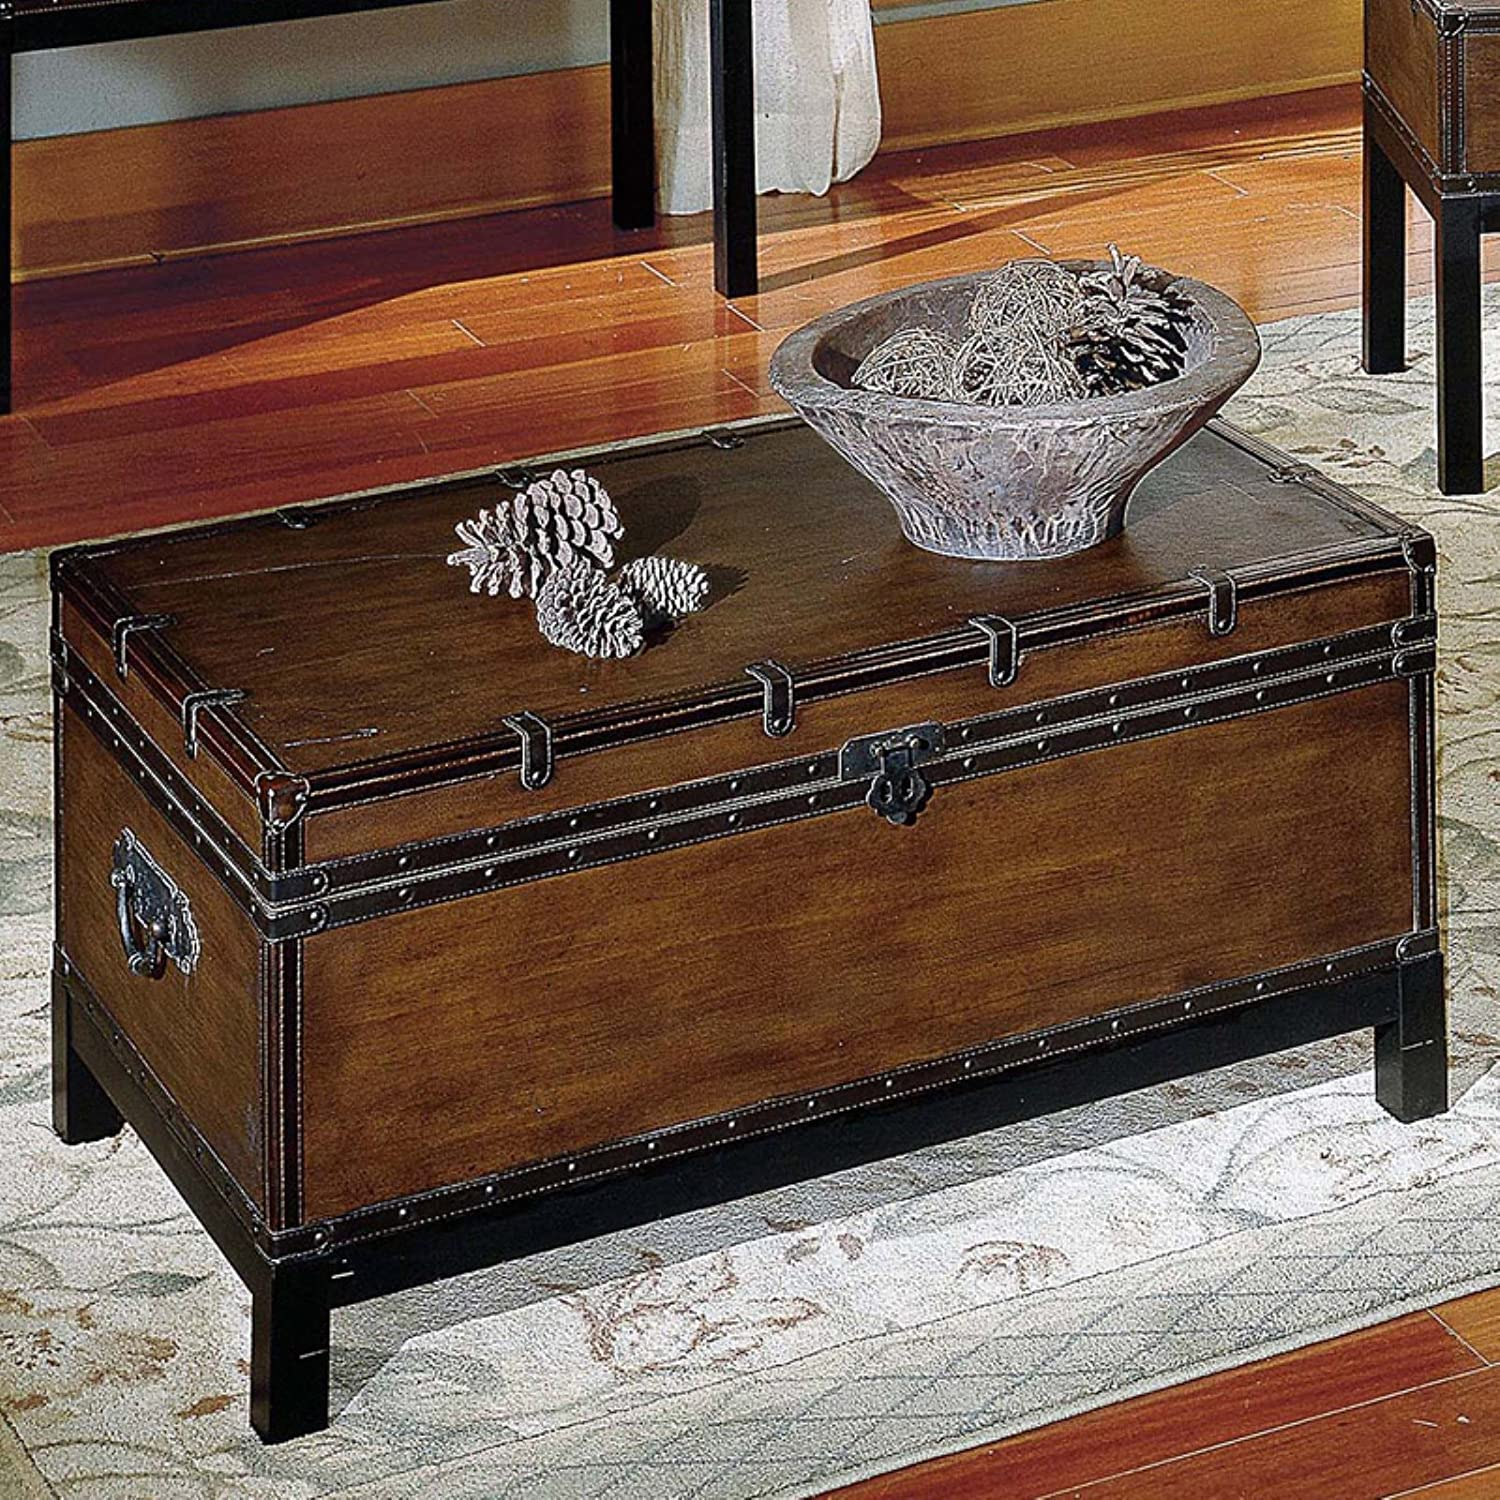 Trunk Coffee Table With Storage: Home Decor And Furniture Deals